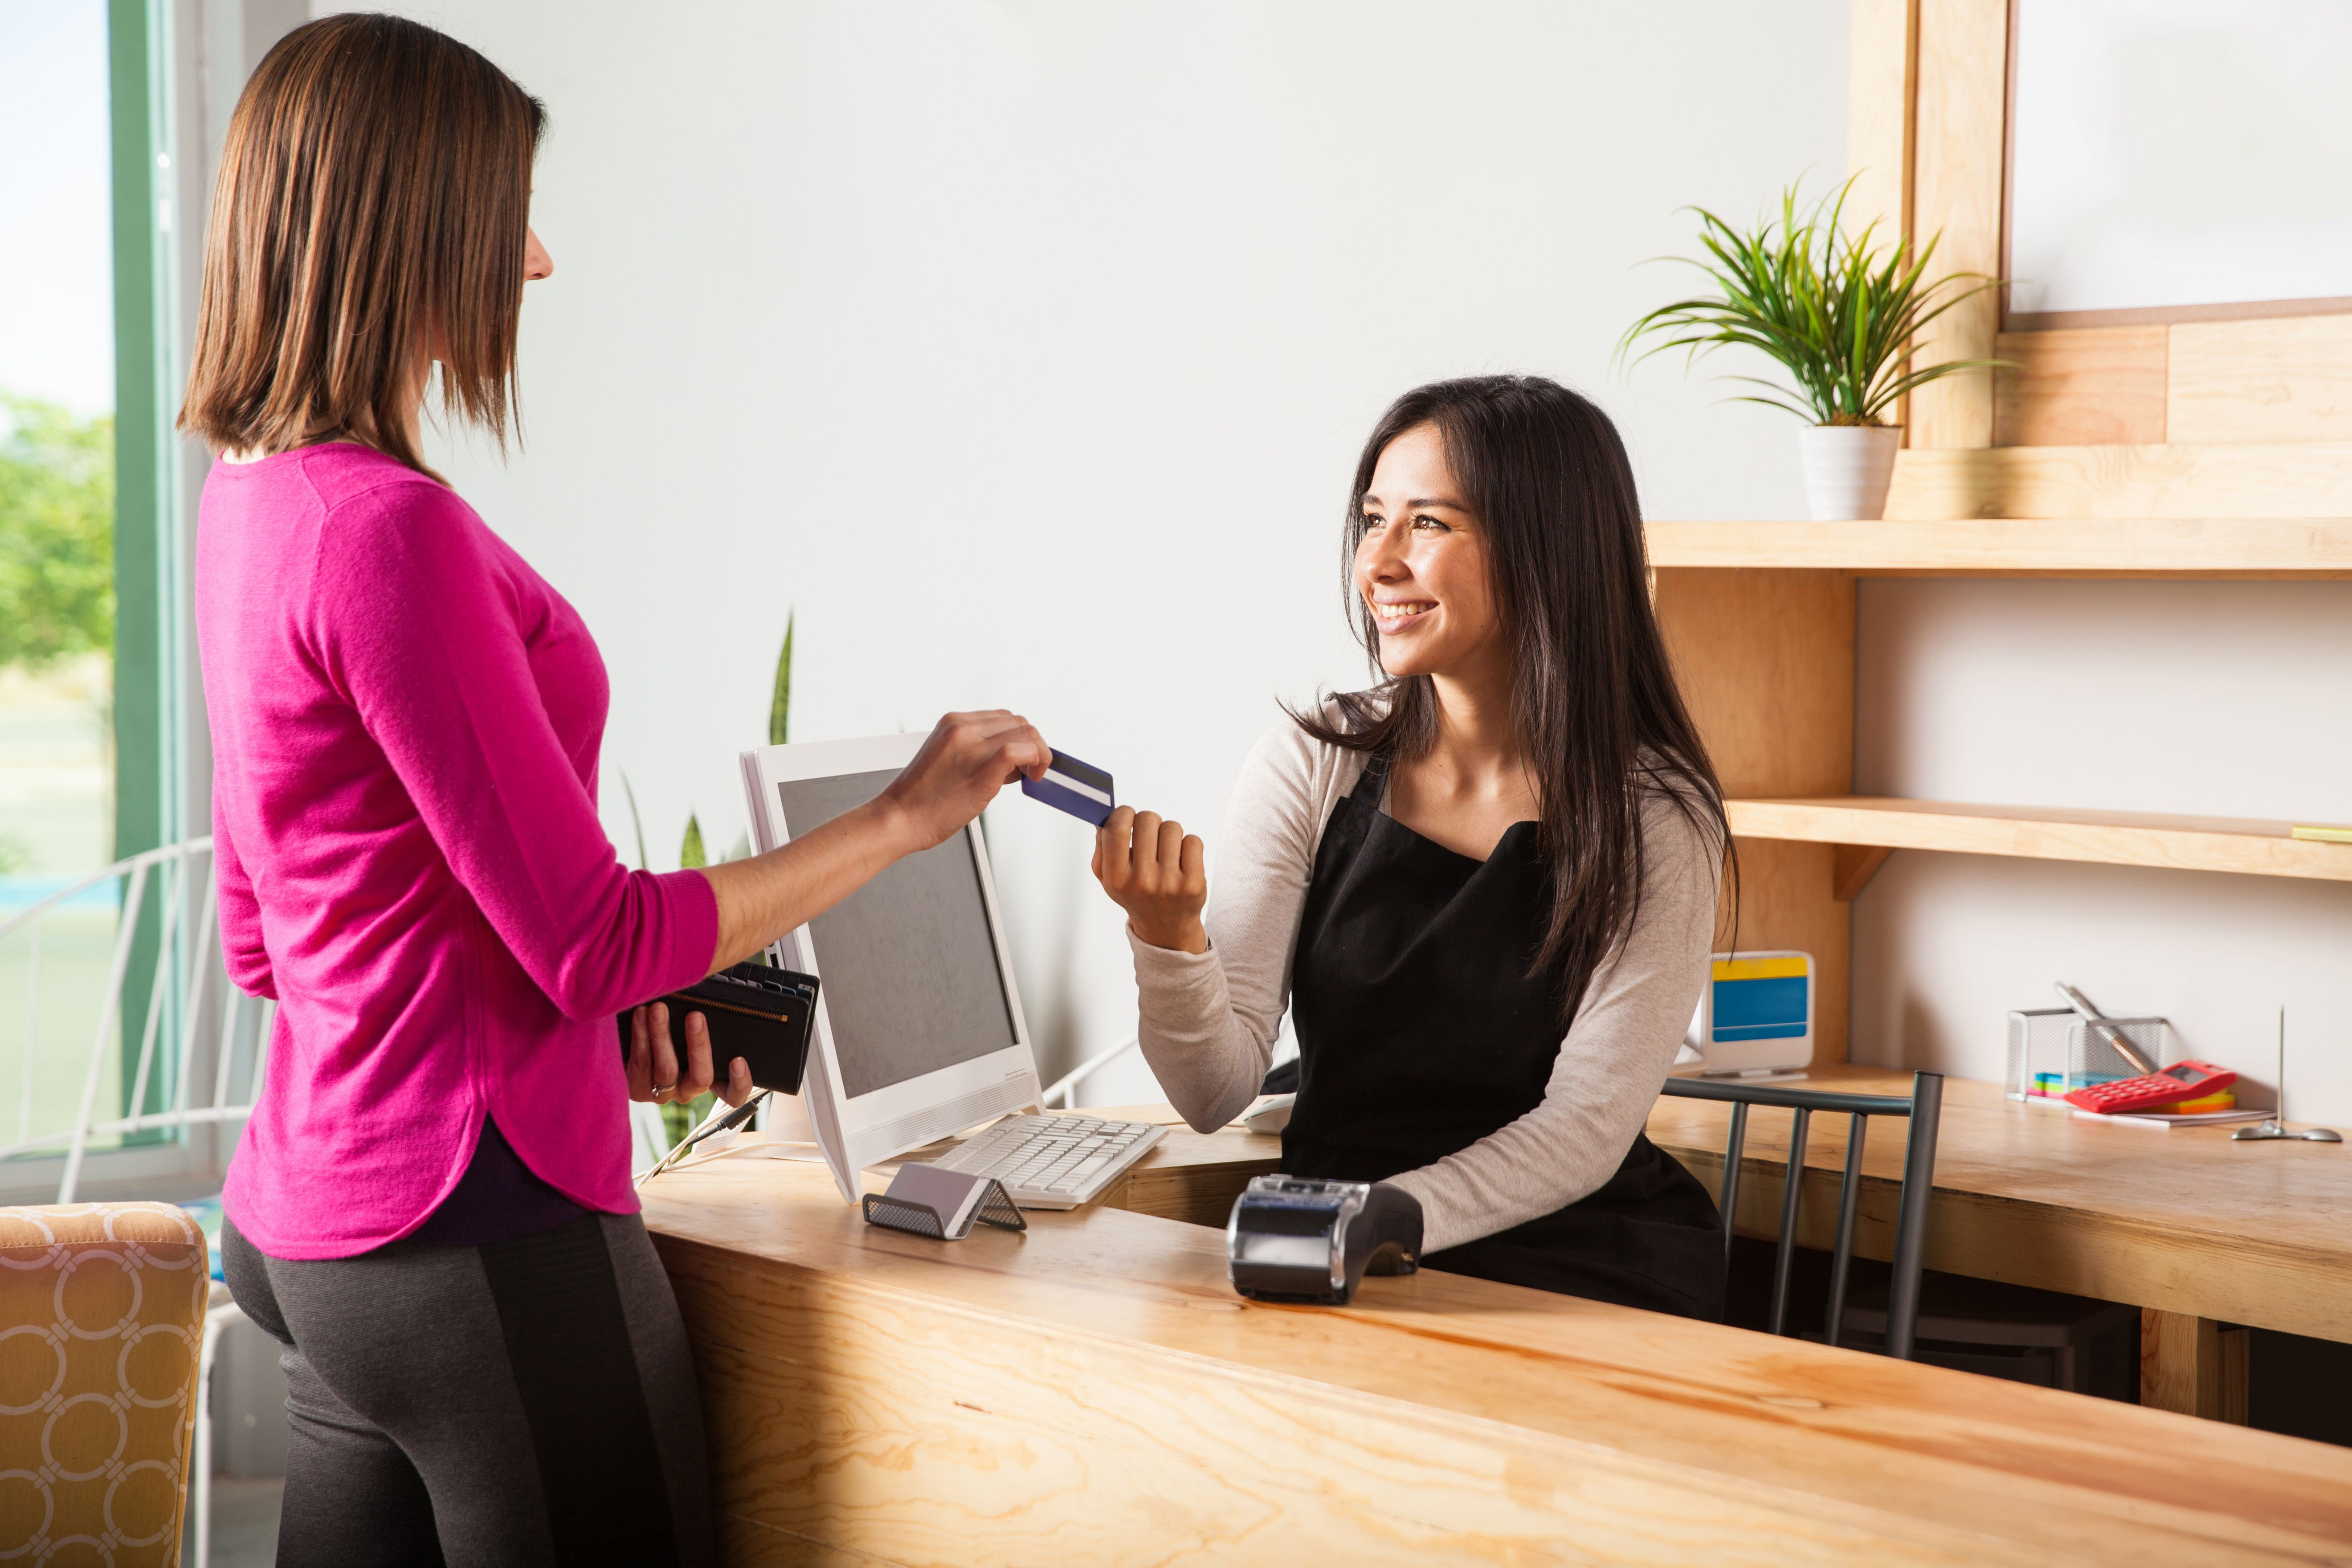 Make sure you get your point of sale solutions right